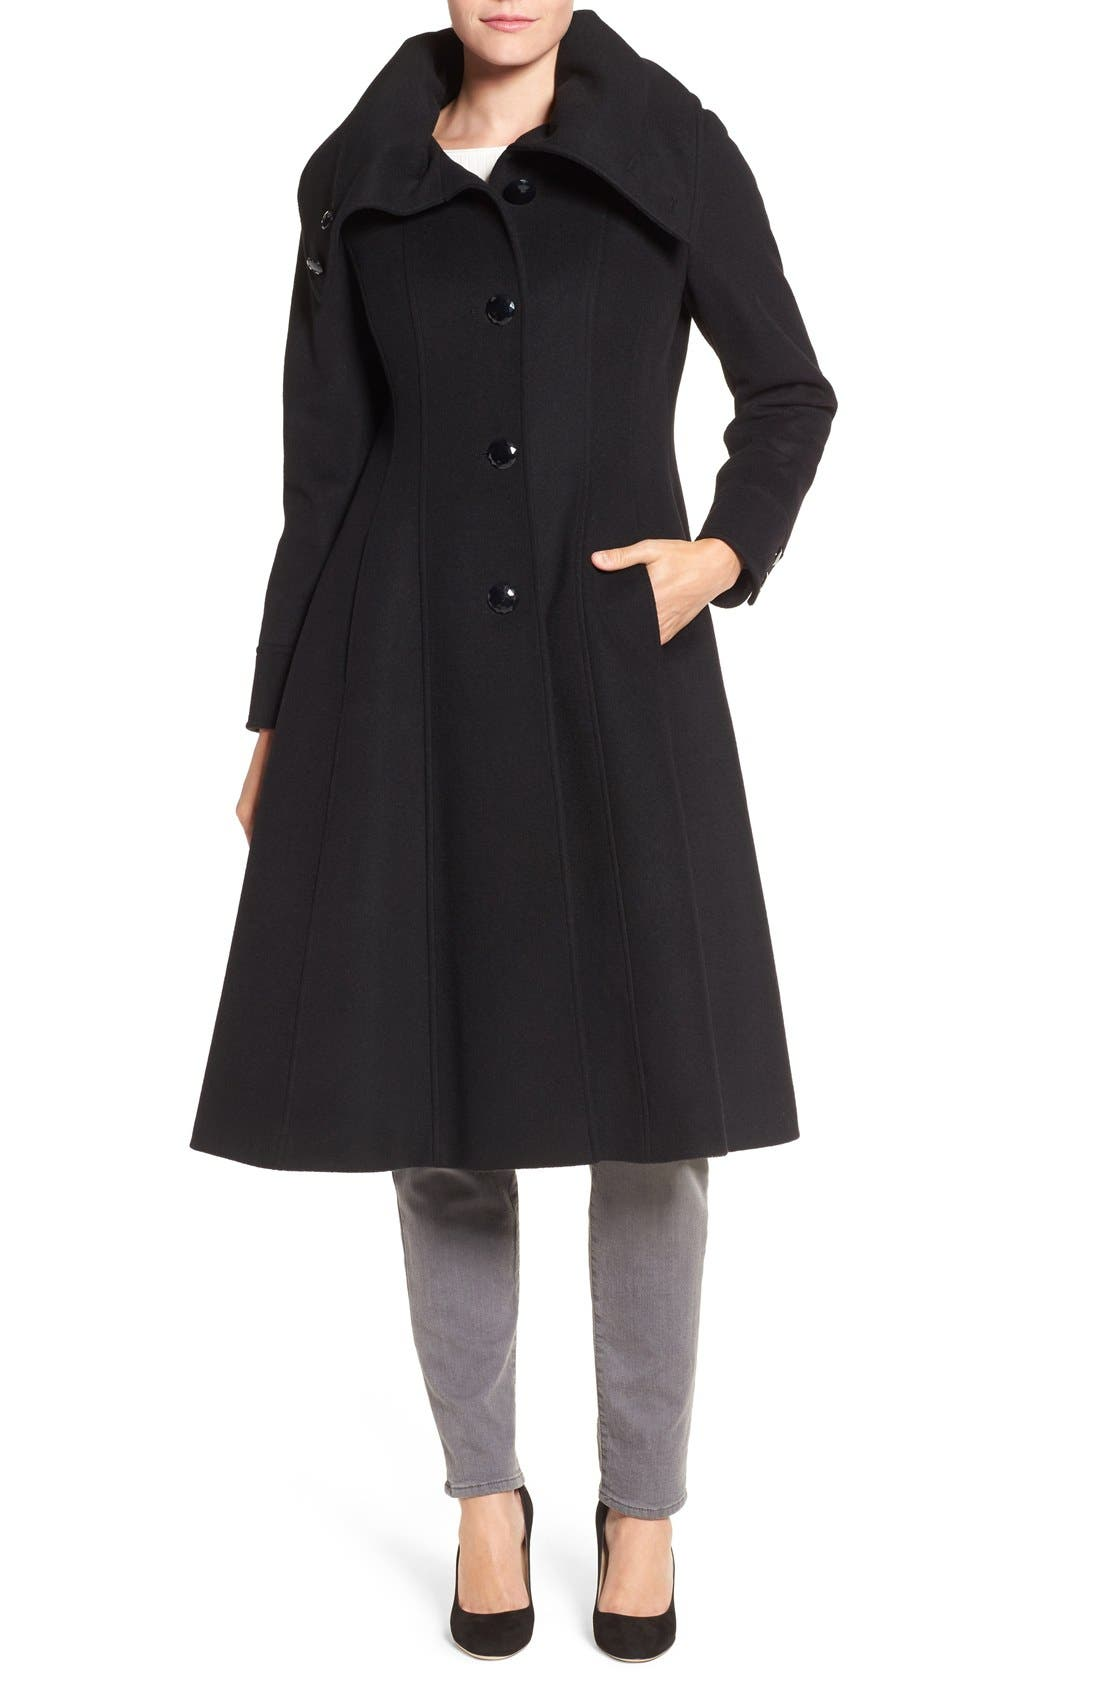 Alternate Image 1 Selected - George Simonton High Neck Wool Blend Long Coat